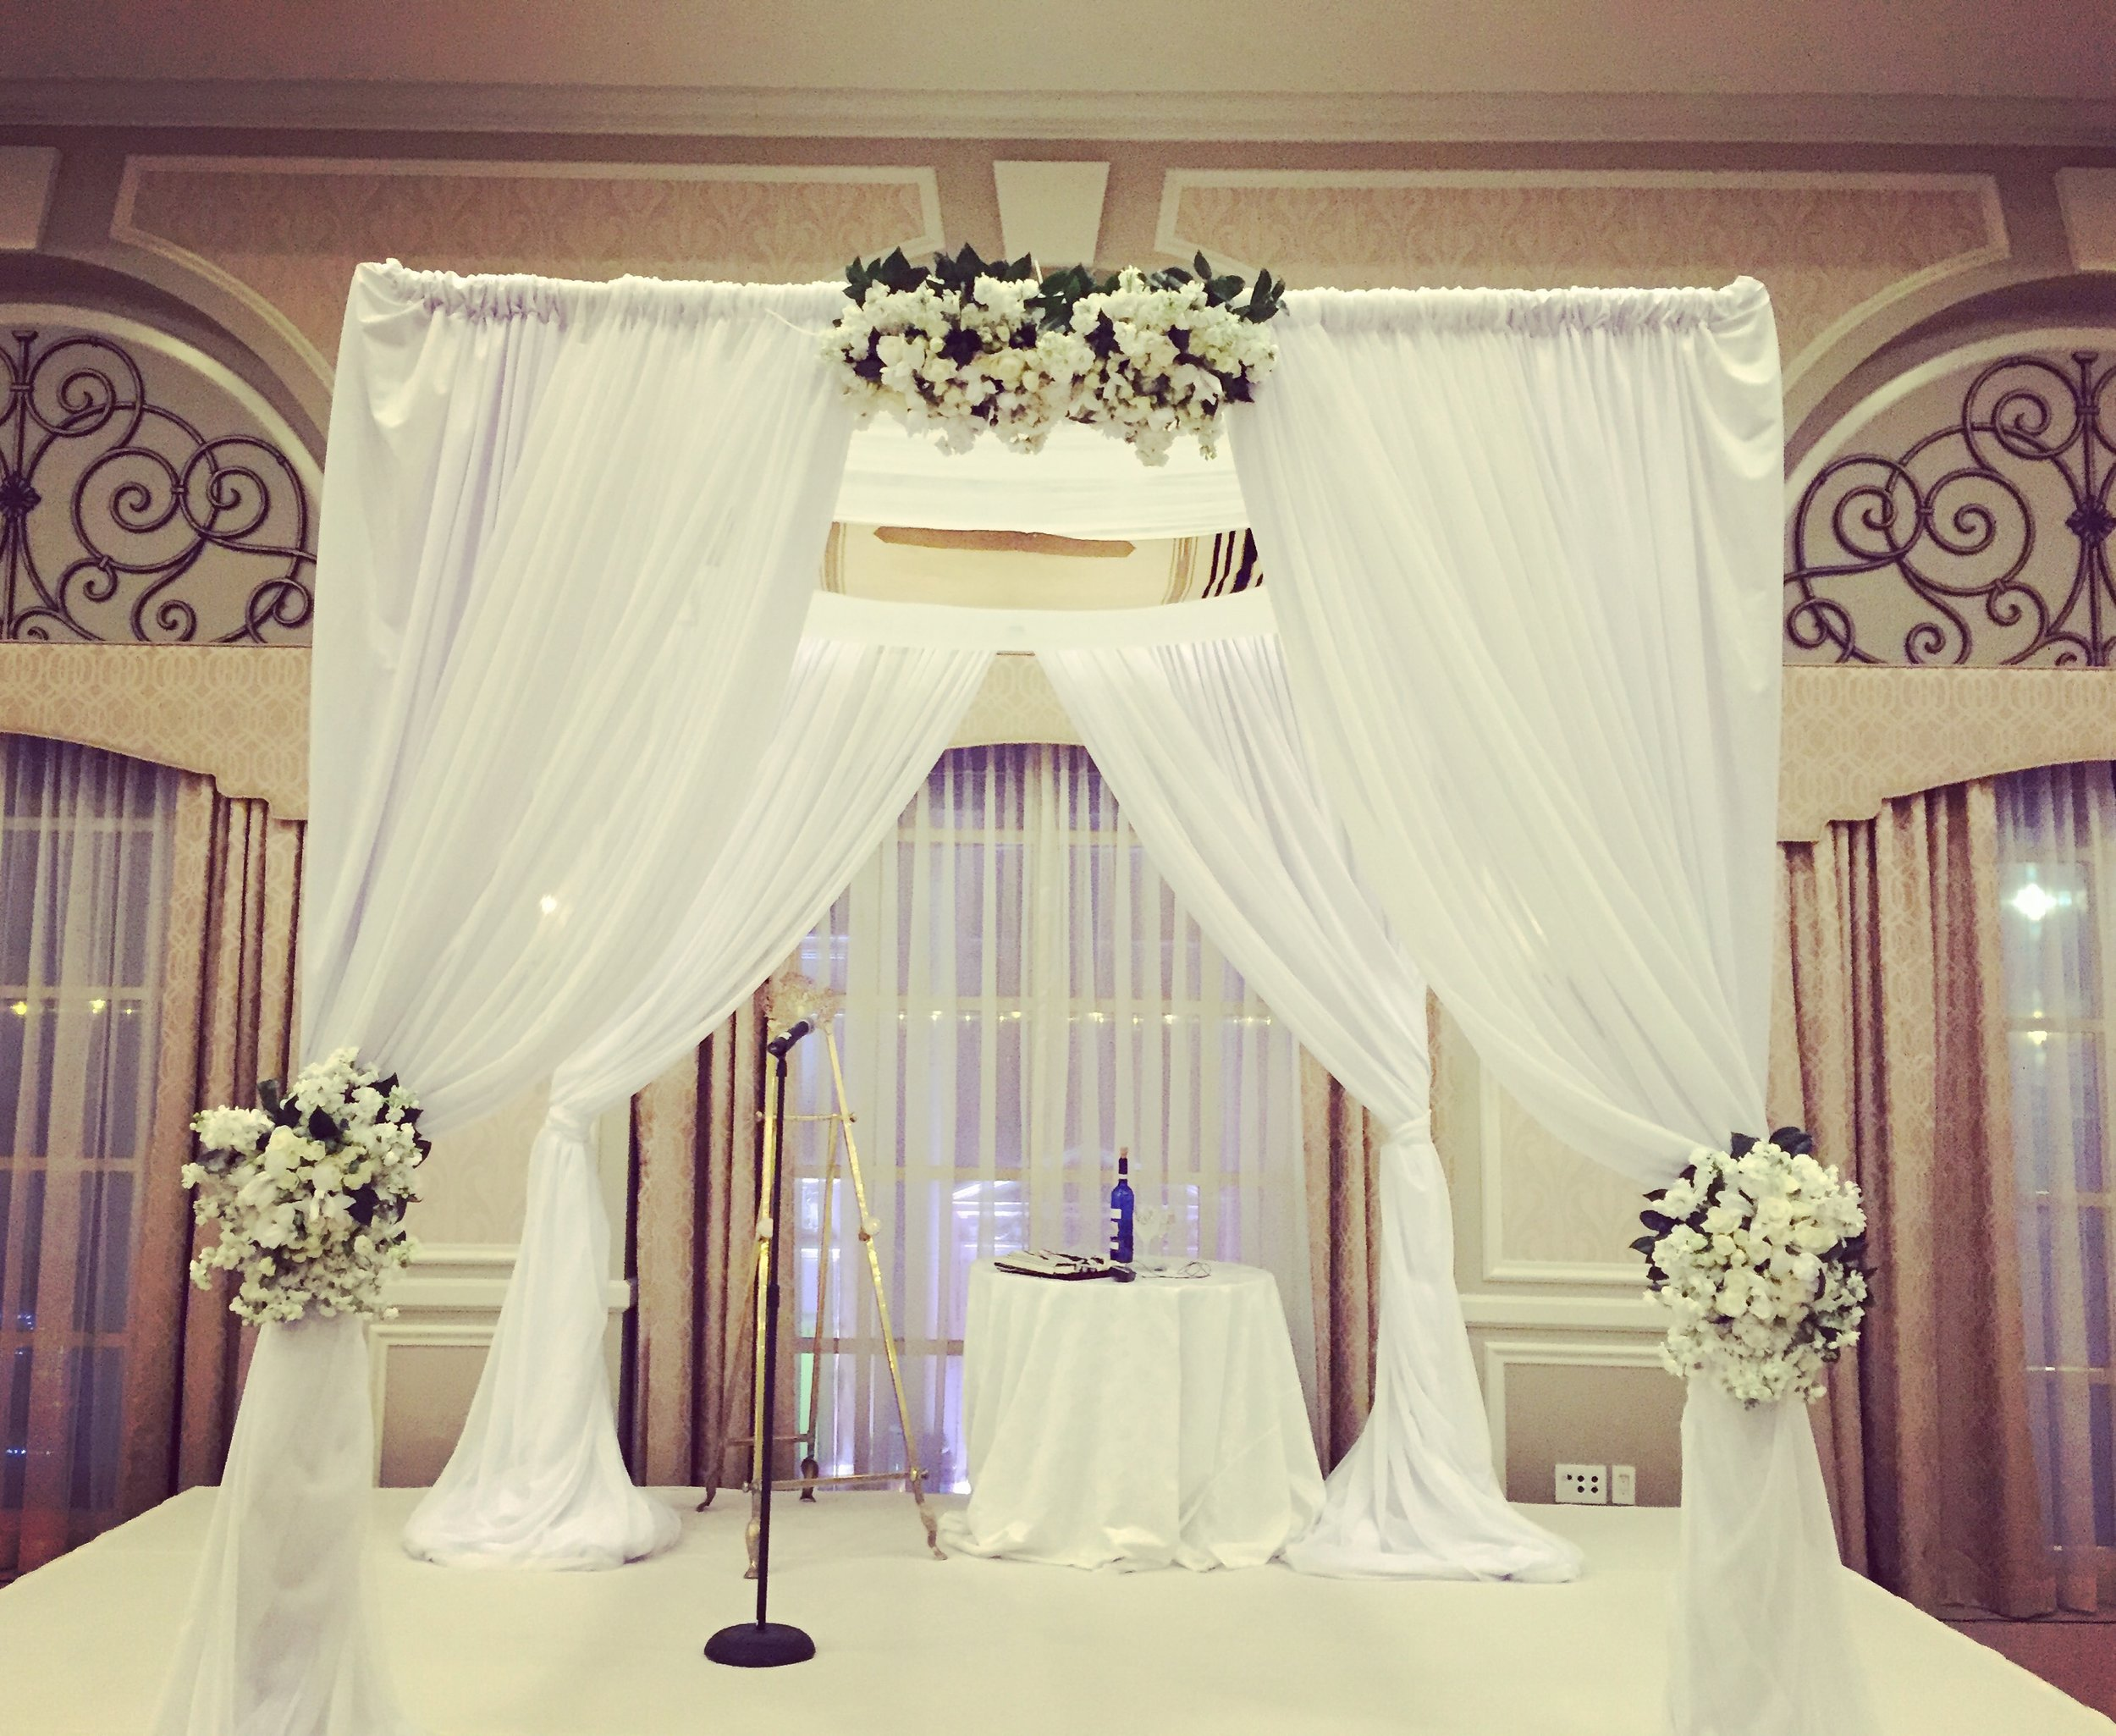 Winter wedding at the adolphus hotel in dallas, texas on december 17, 2016. Chuppah floral designed by designer, m. Rose